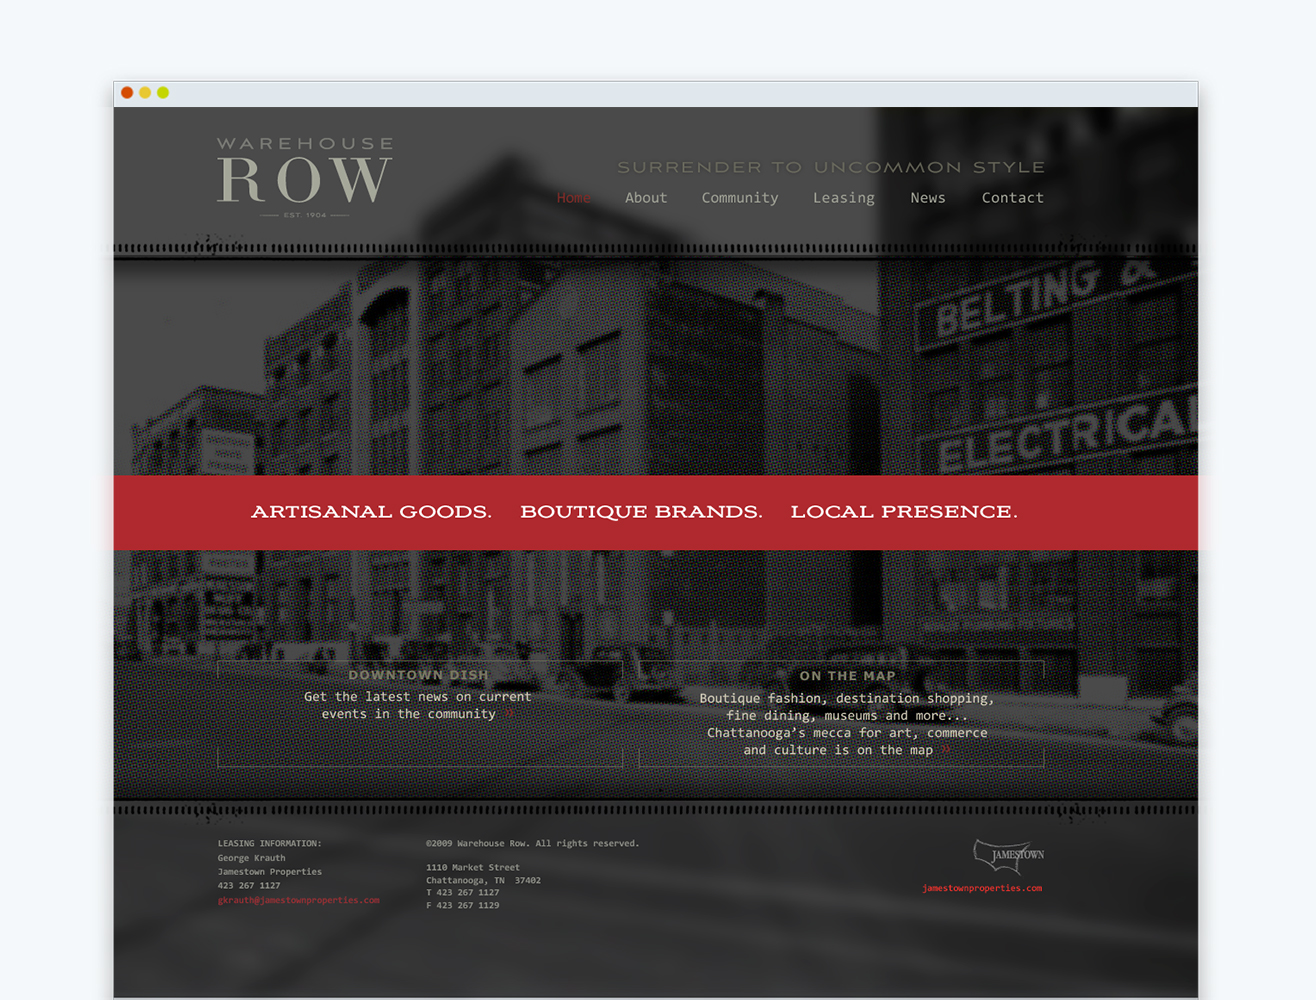 Warehouse Row Website Home Page